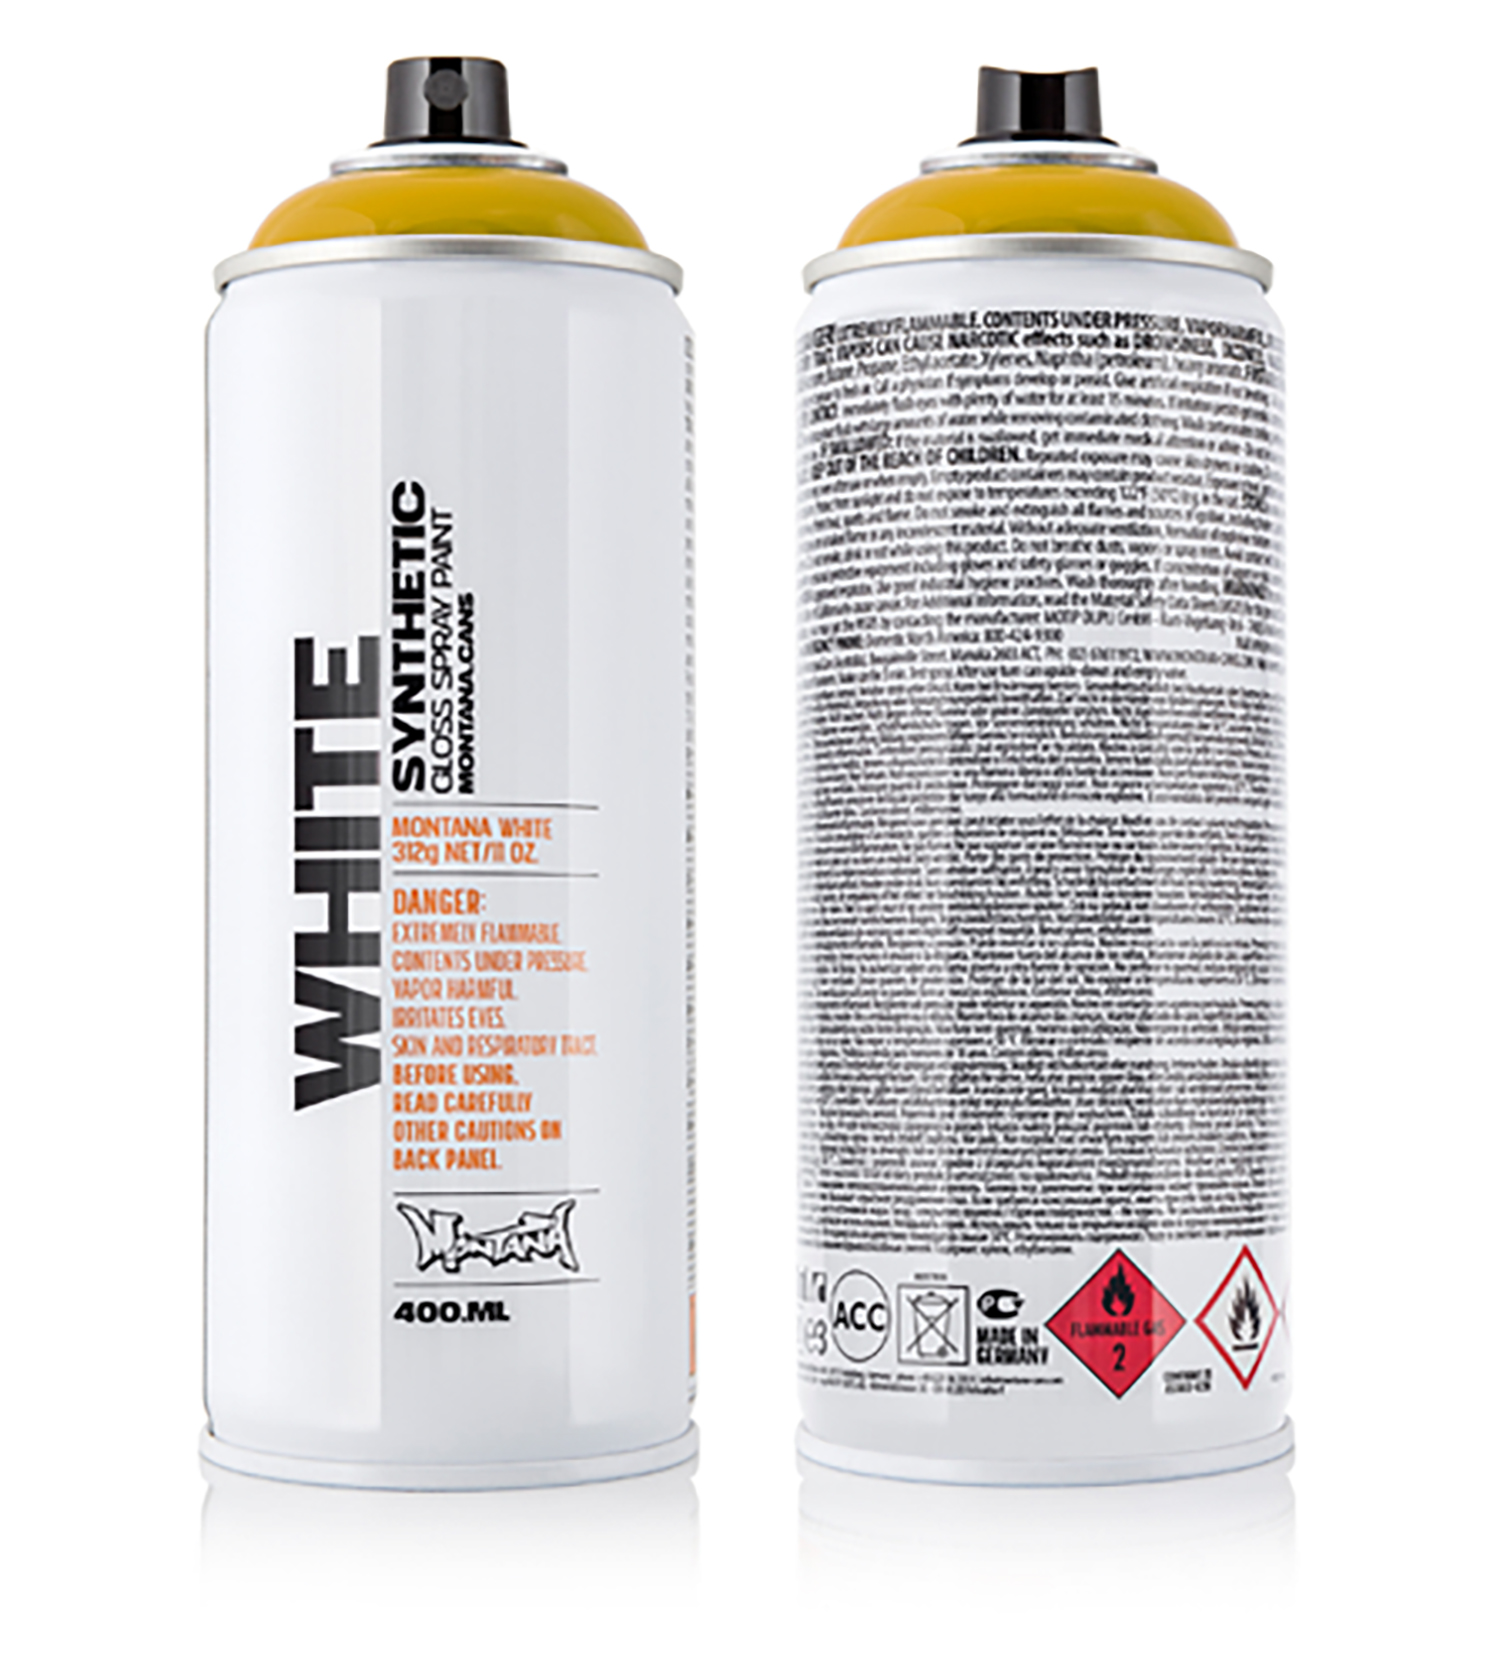 MONTANA-WHITE-SPRAY-400ML-1050